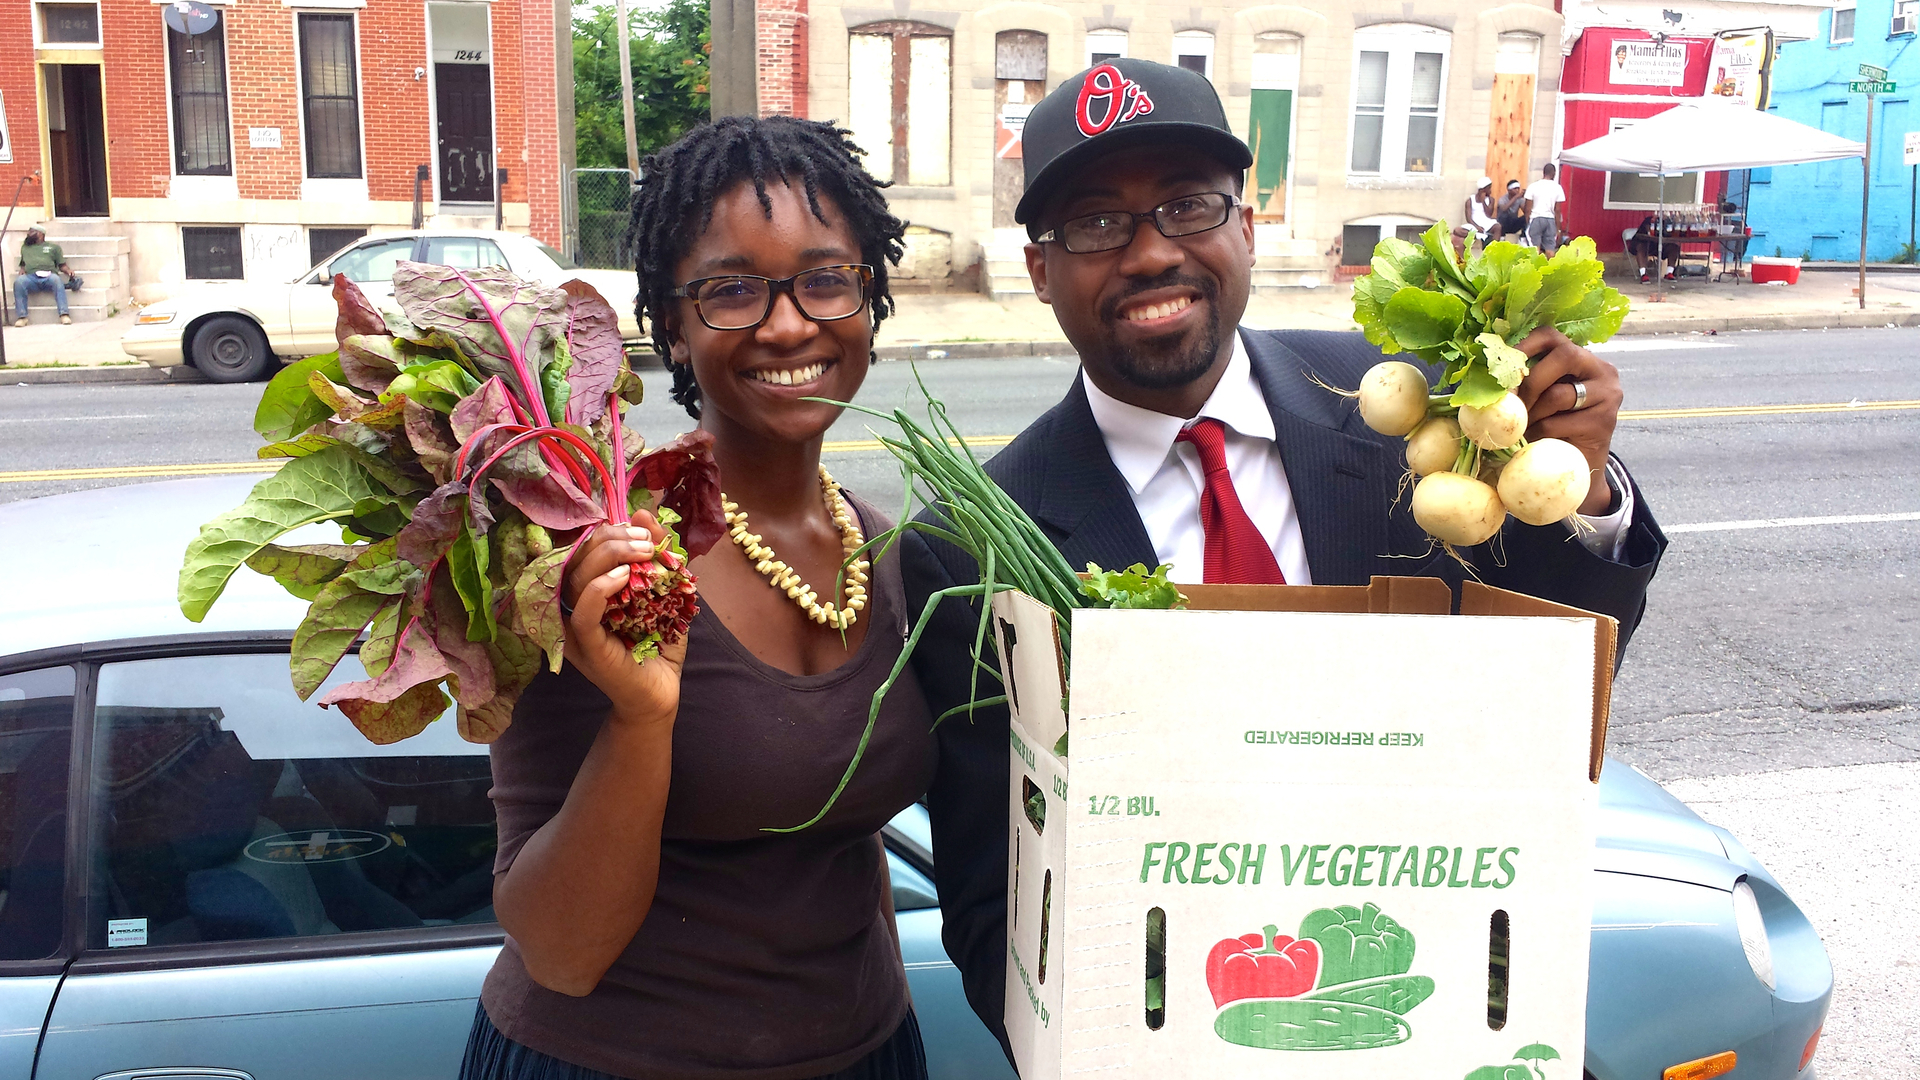 The Black Church Food Security Network, BCFSN, African American Church, Black Church, African American Communities, African American, Economics, Black Economics, KOLUMN Magazine, KOLUMN, KINDR'D Magazine, KINDR'D